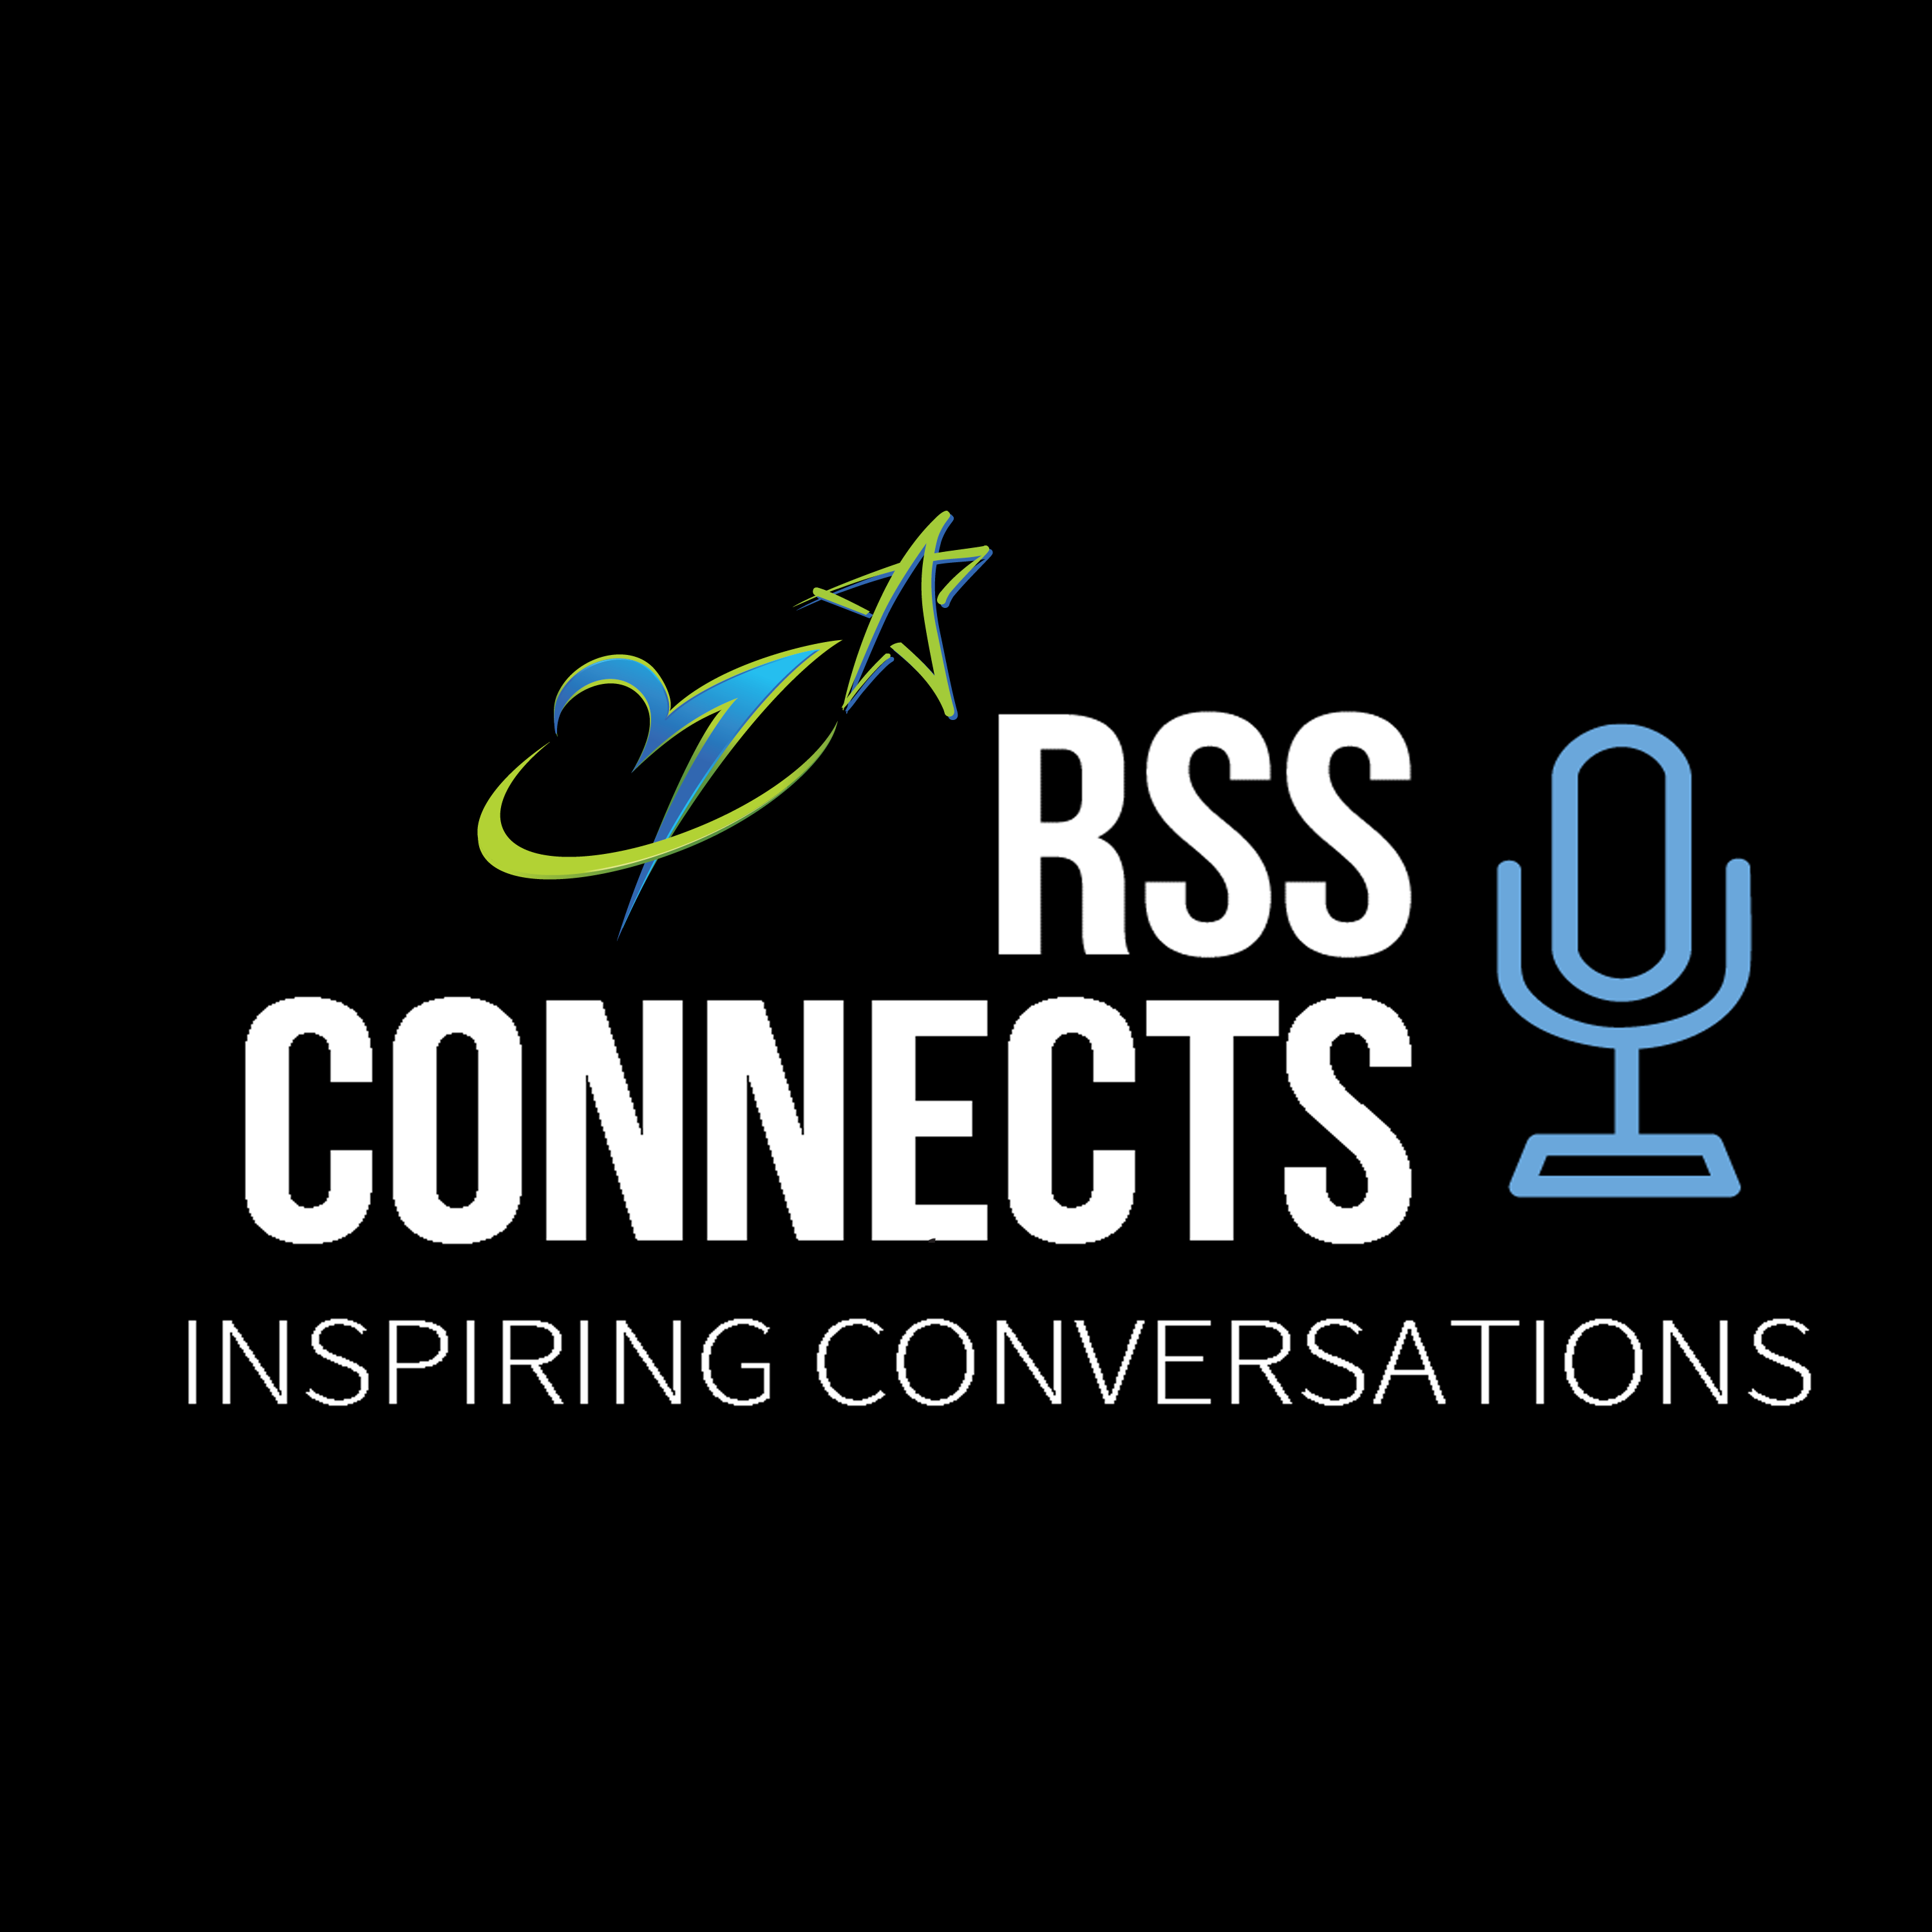 RSS Connects Podcast Episode 9: Podcasting in the Classroom: Outside Your Four Walls